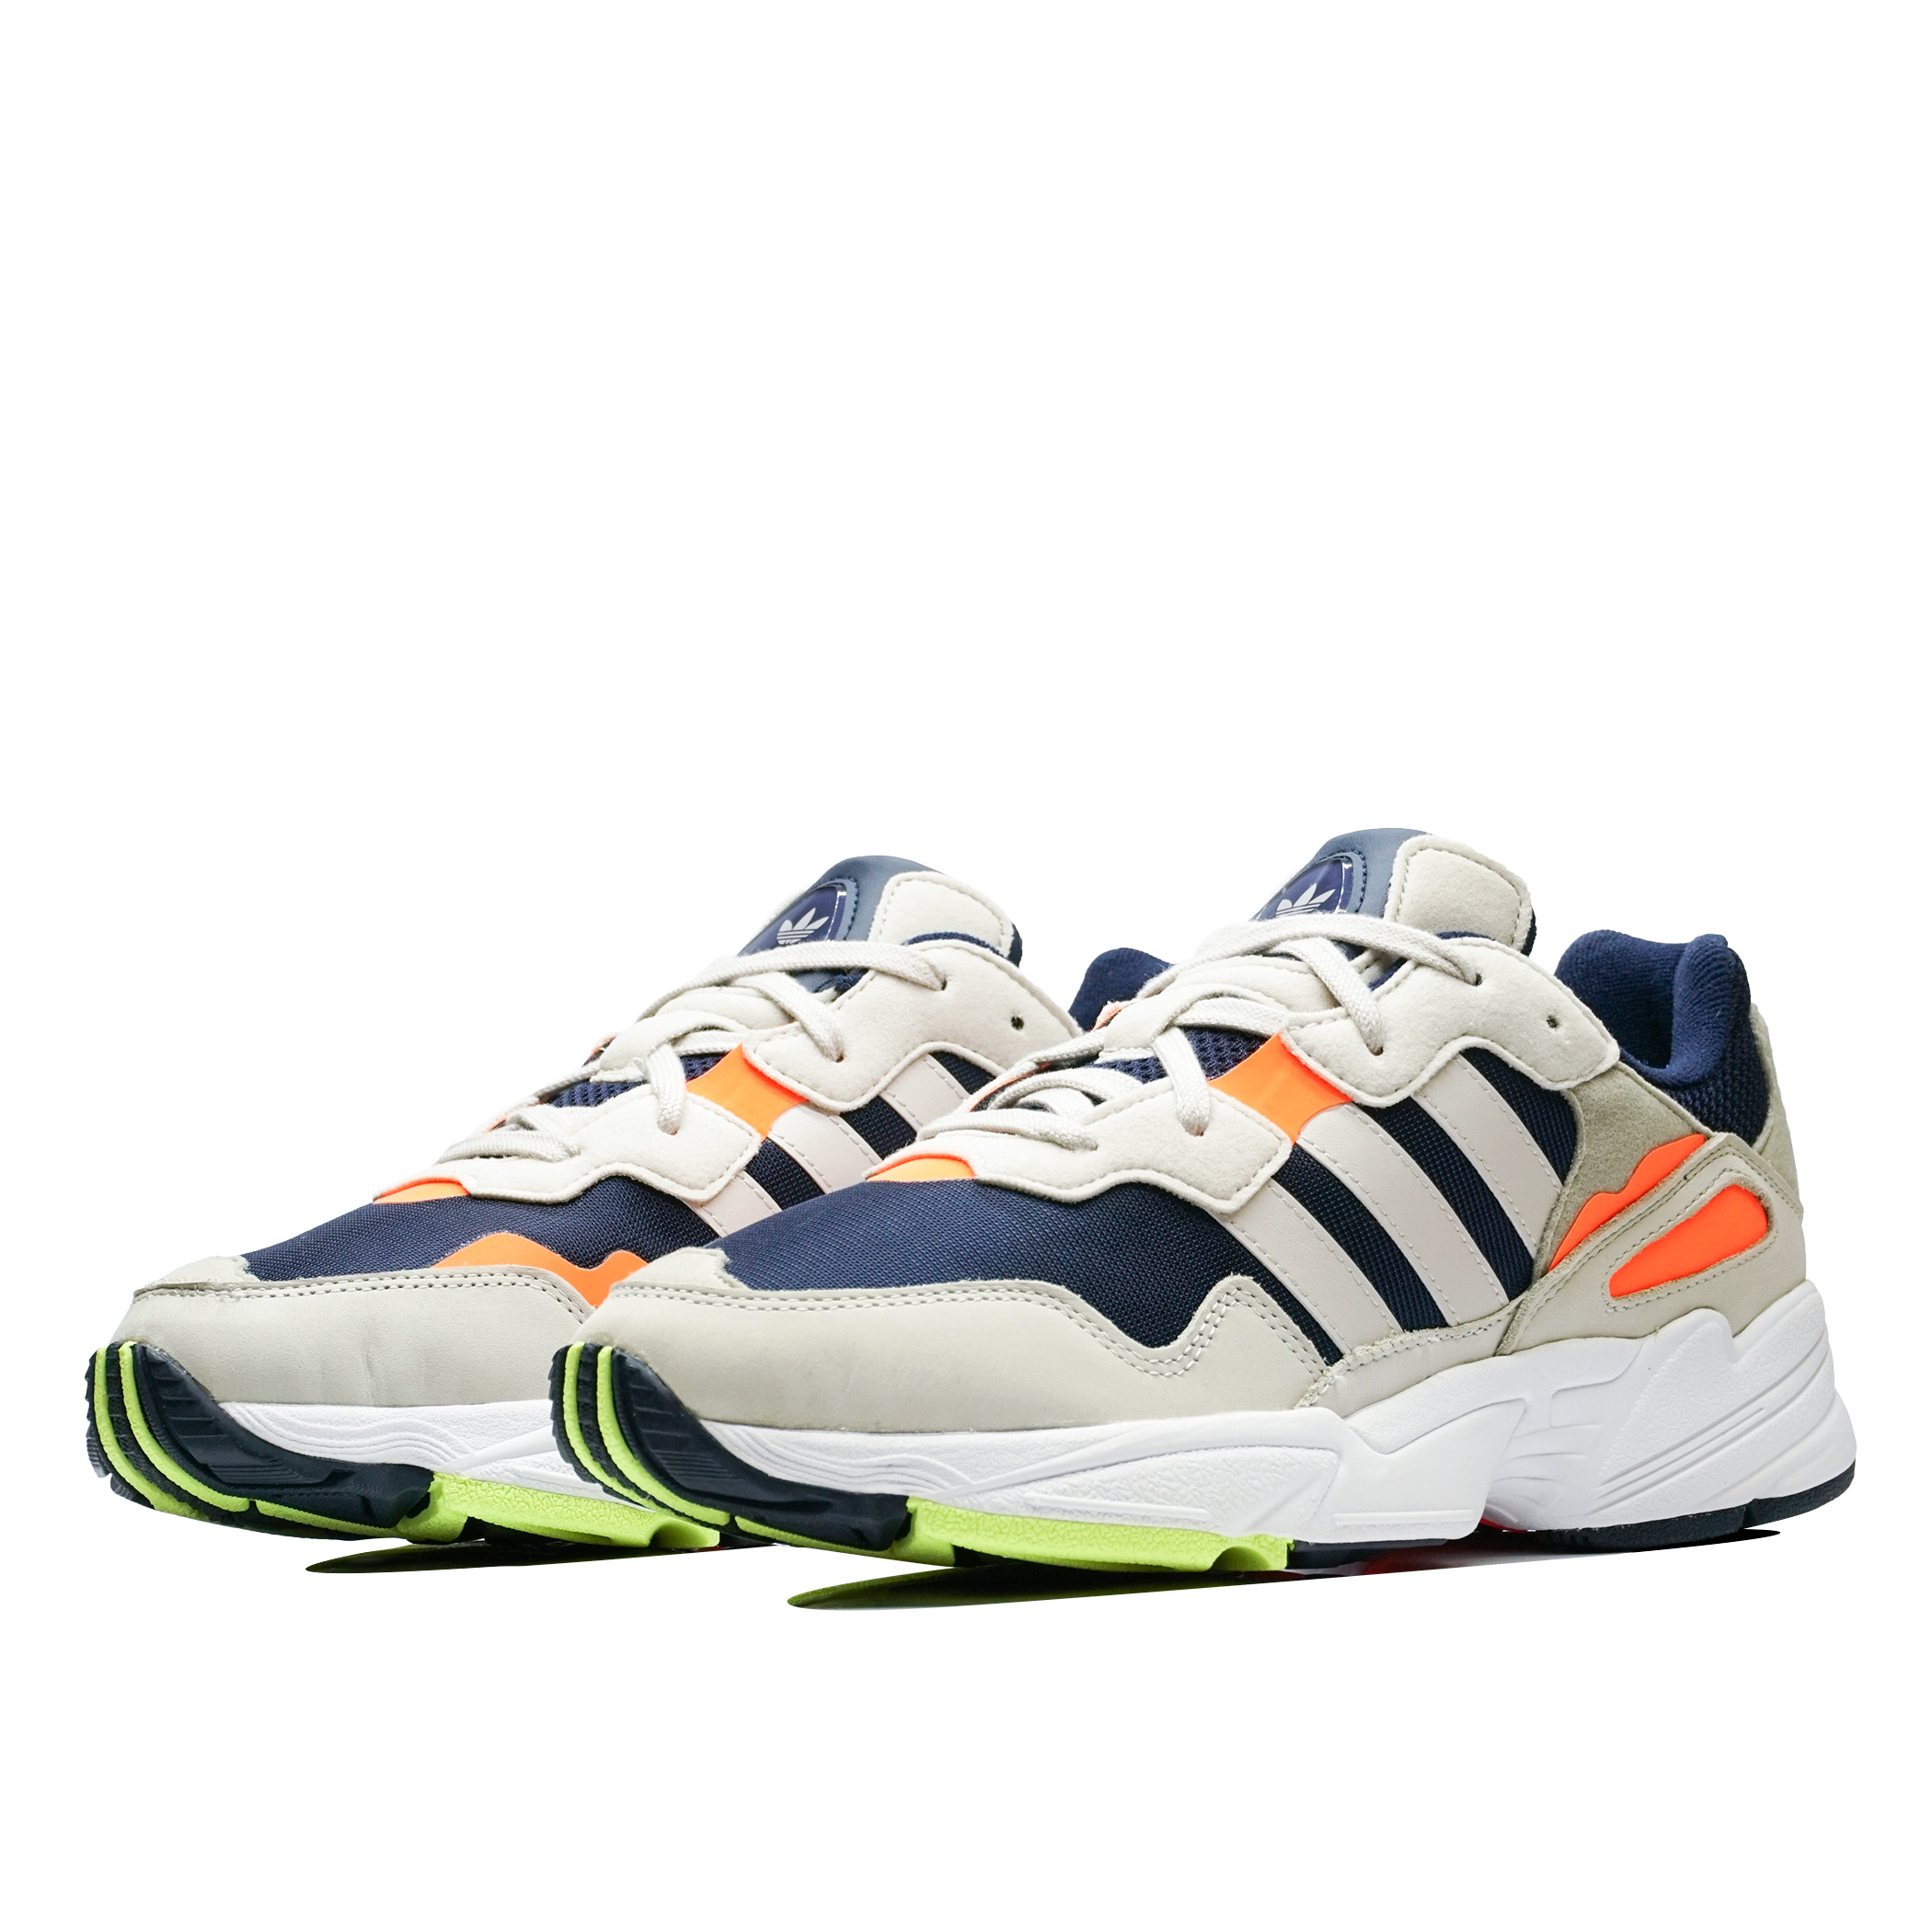 new style 14d00 2010f Мужские кроссовки adidas Originals Yung-96 Collegiate Navy Raw White, Solar  Orange